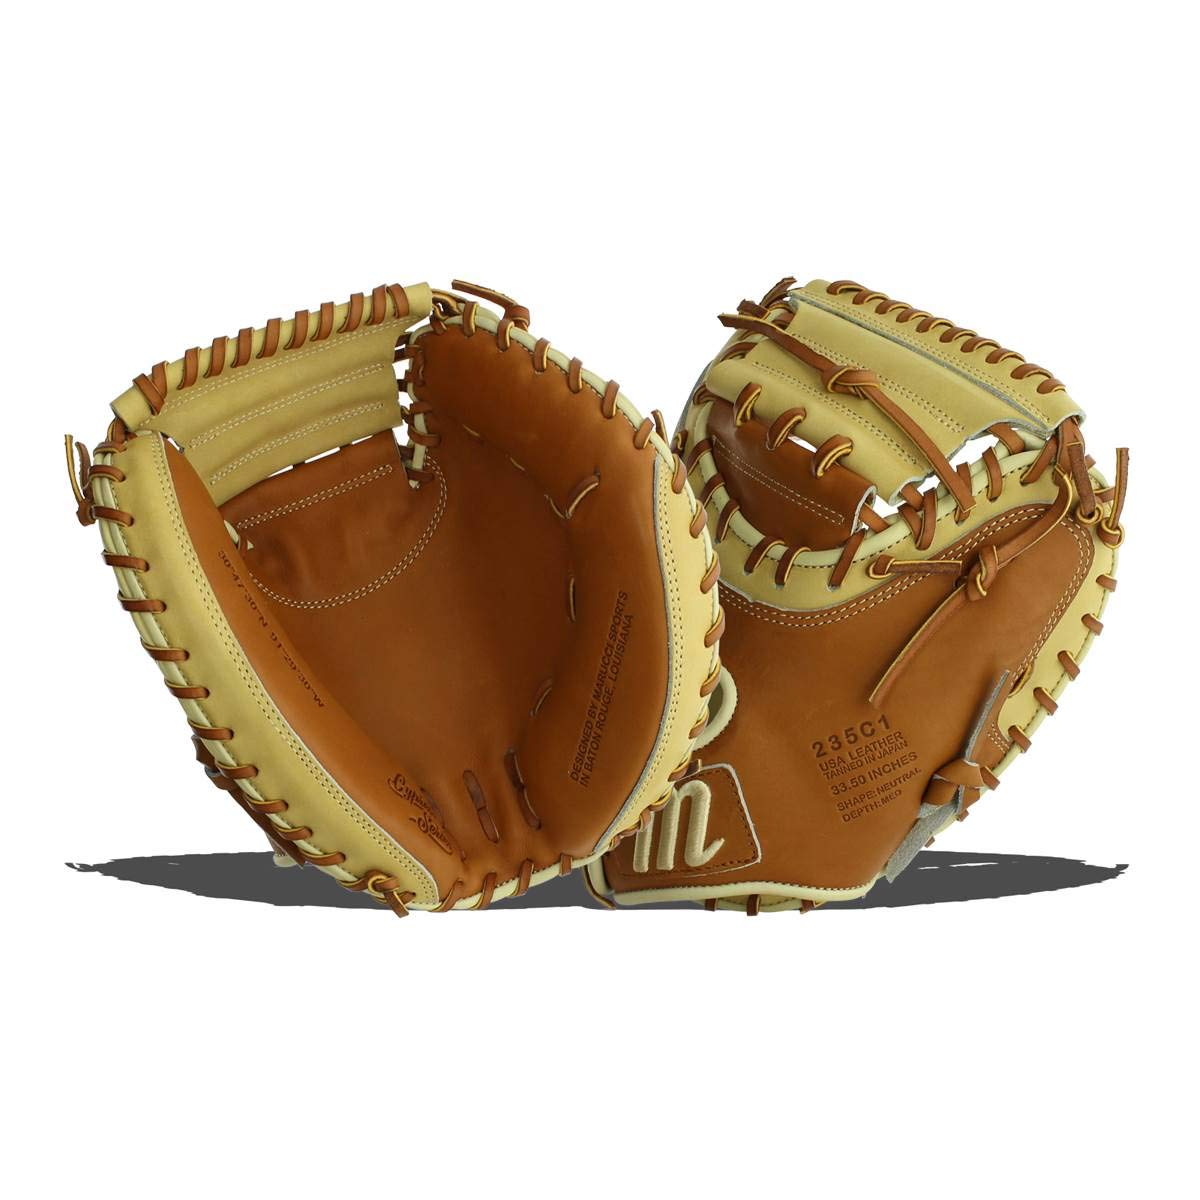 marucci-cypress-catchers-mitt-33-5-baseball-glove-235c1-right-hand-throw MFGCY235C1-SMTF-RightHandThrow Marucci 849817099452 <p>33.50 Inch Glove Pattern Arrives Stiff For Custom Break-In Conventional Open